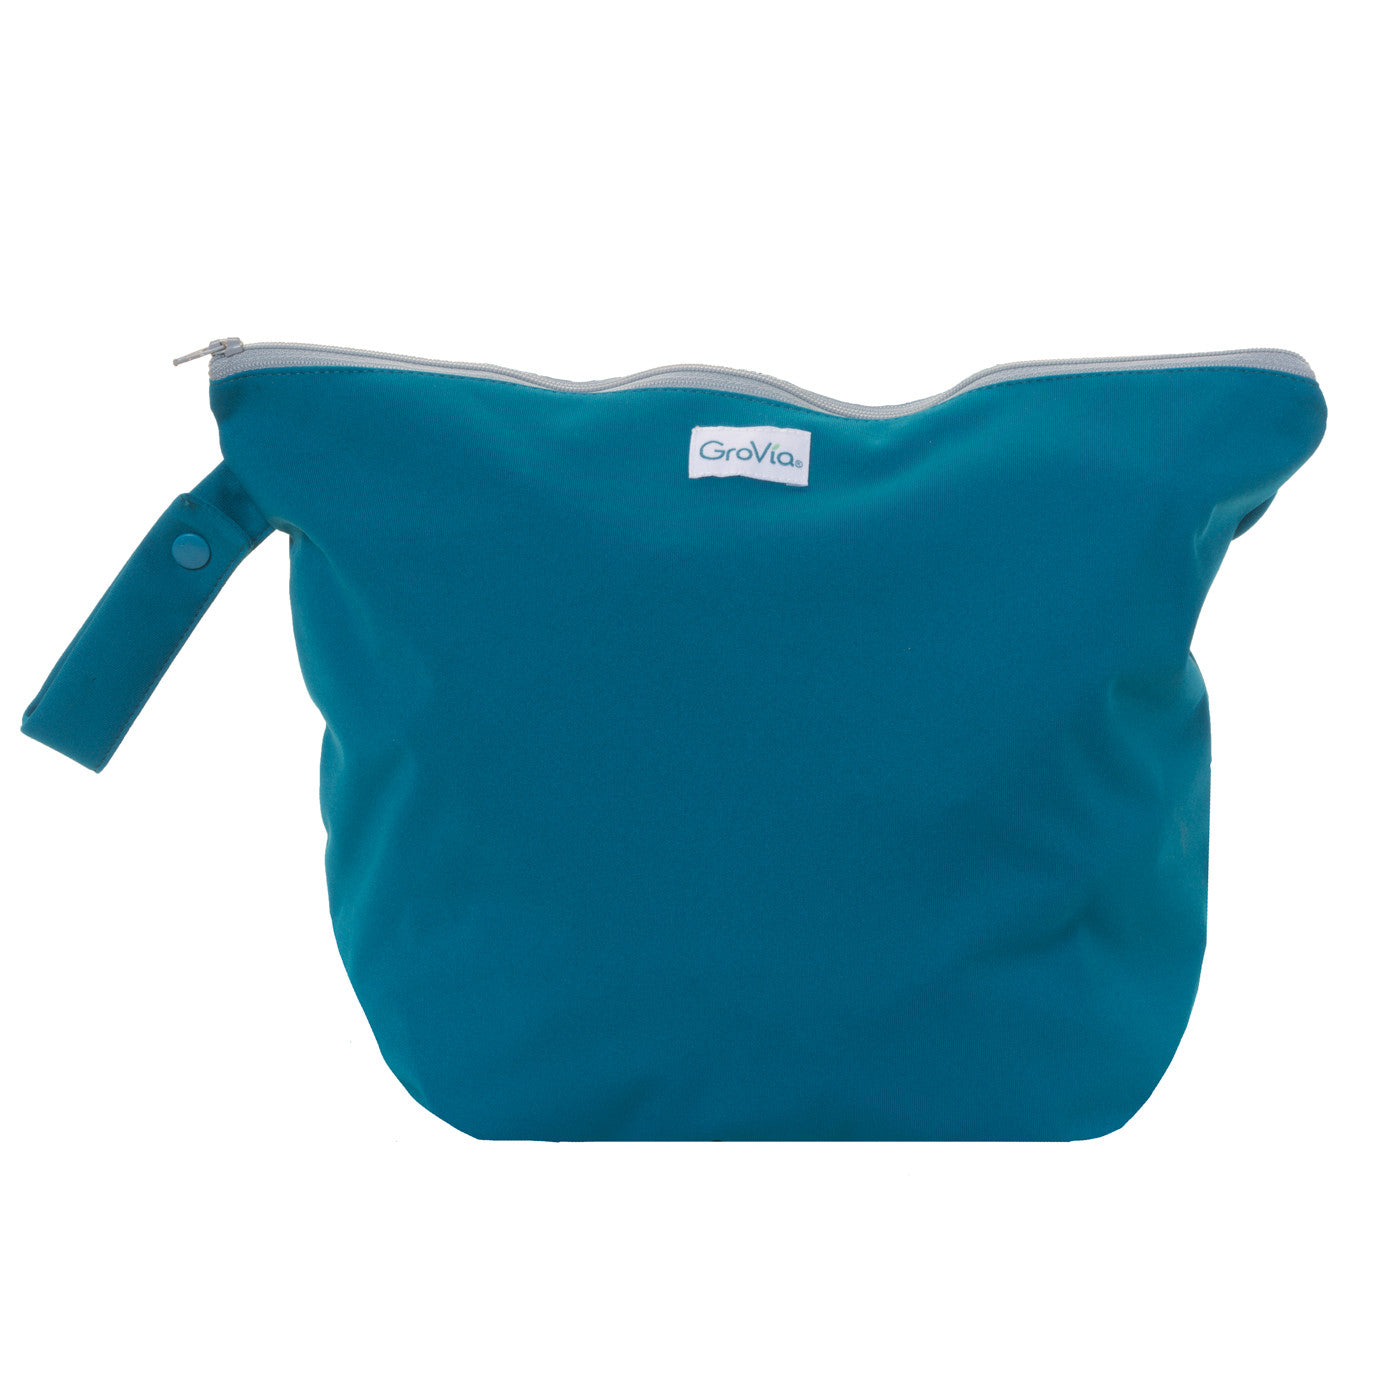 GroVia Wet Bag - Abalone - Crunch Natural Parenting is where to buy